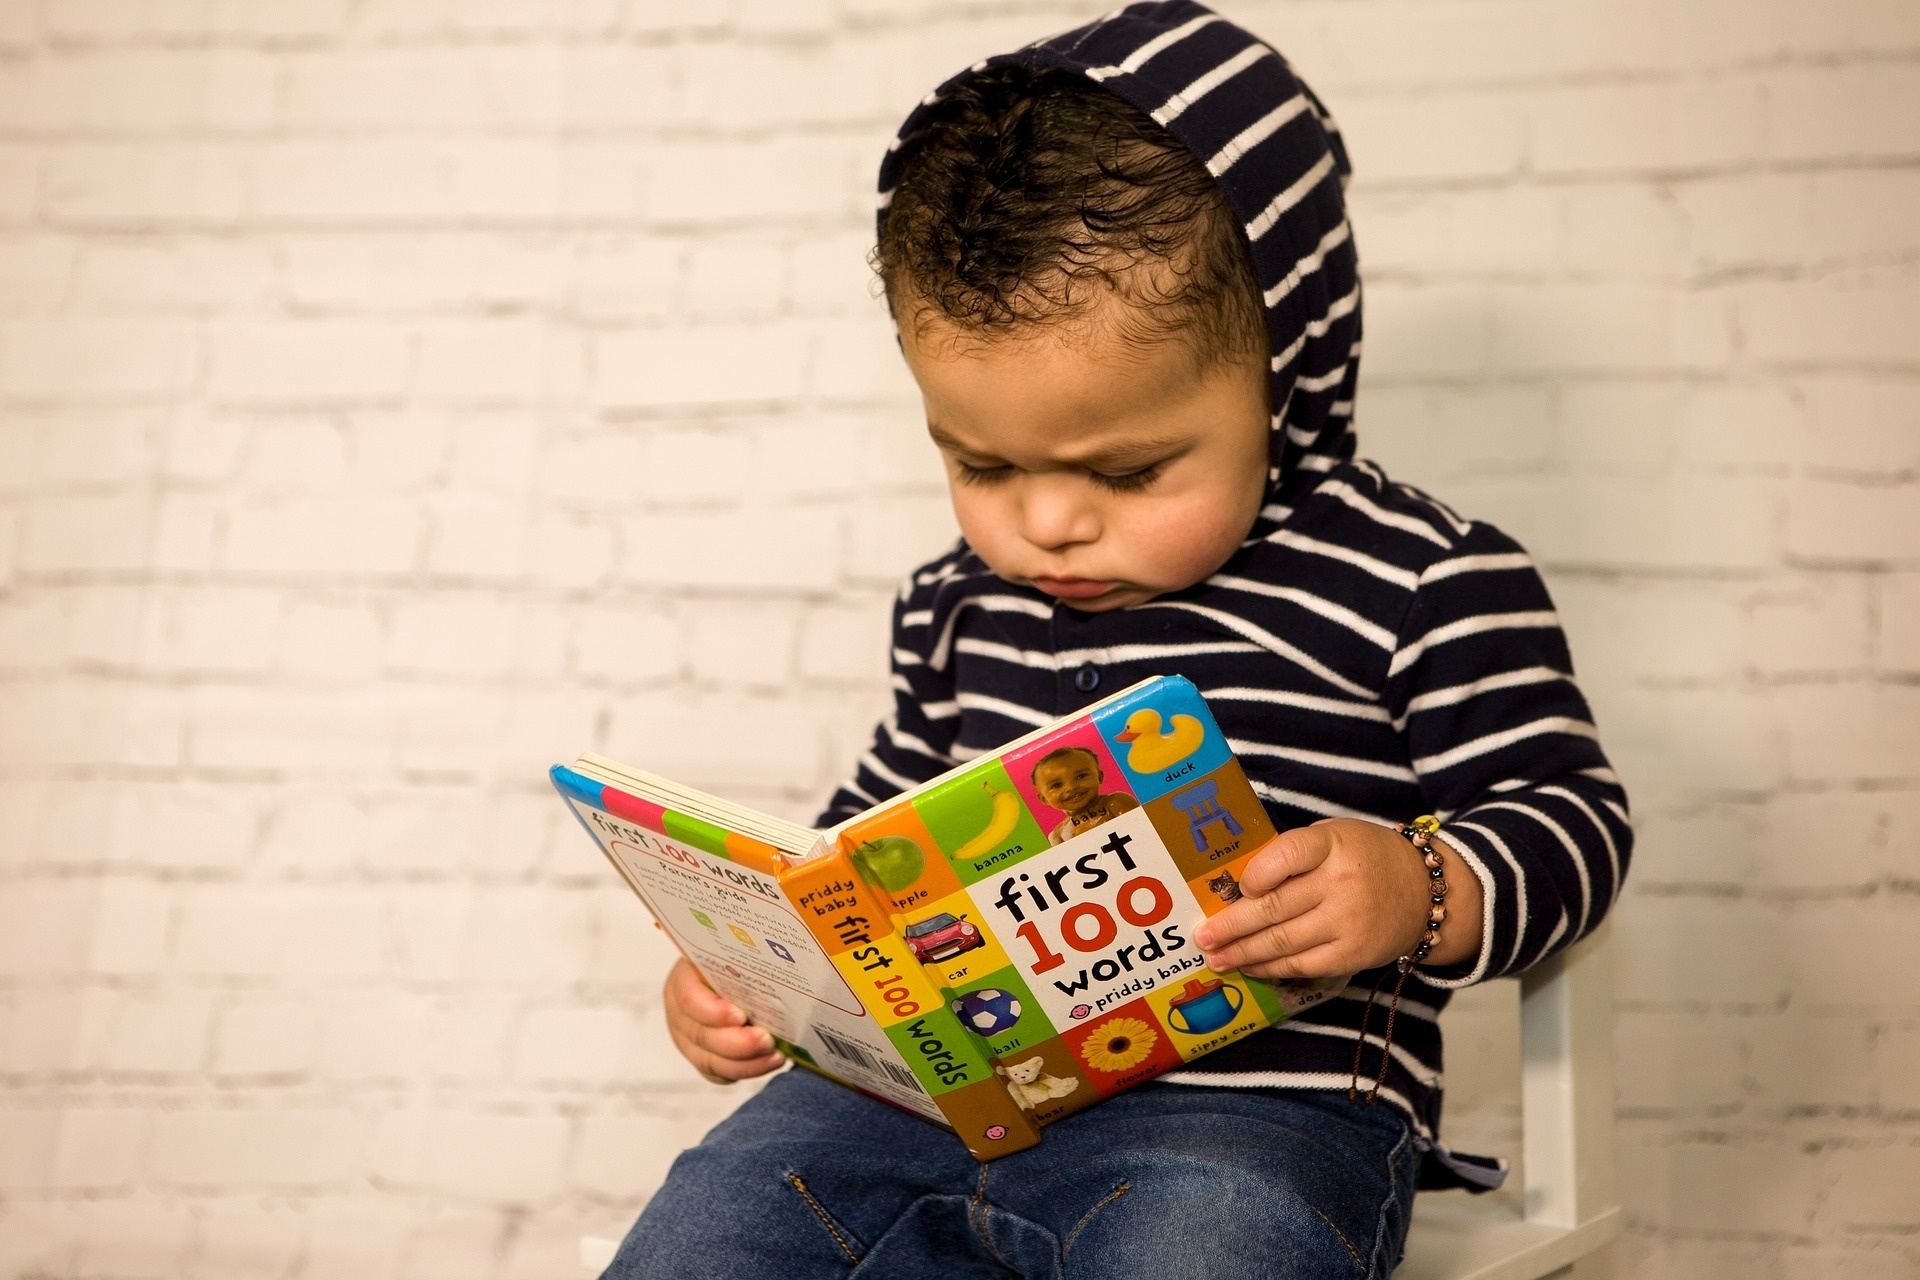 Toddlers engage more with print books than ebooks, developmental researchers say